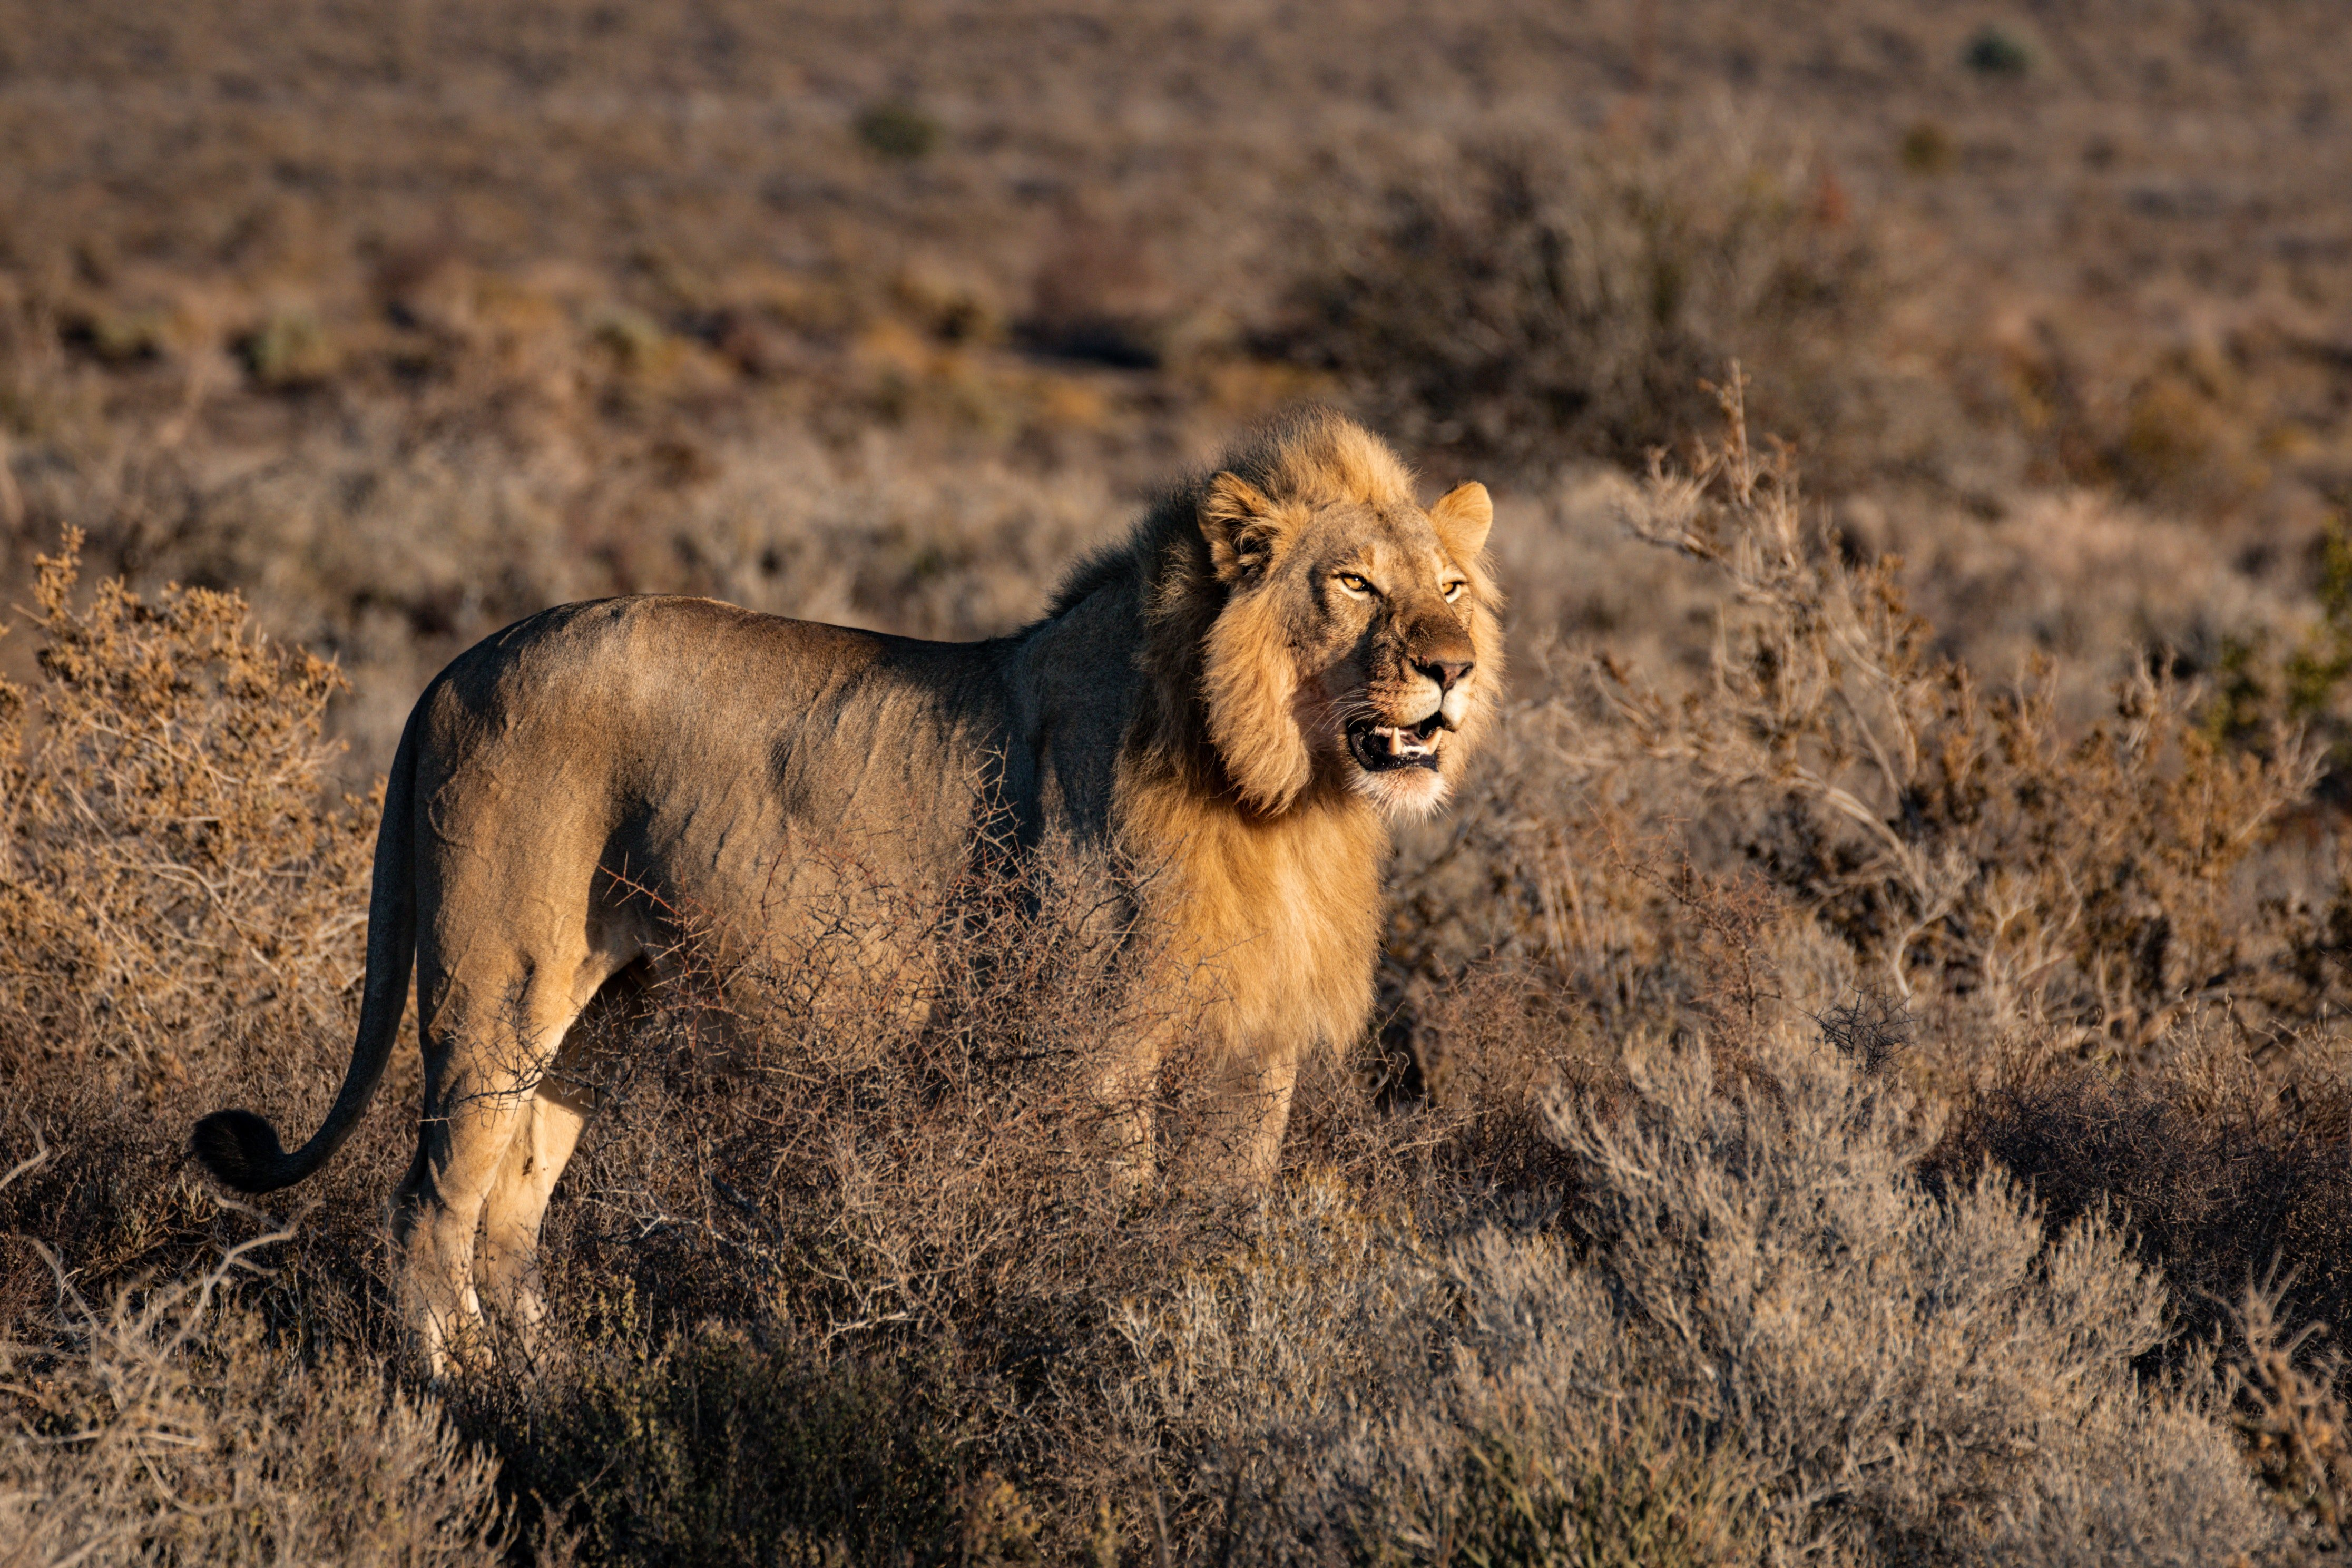 Pictured - An image of a lion out in the wild | Source: Pexels